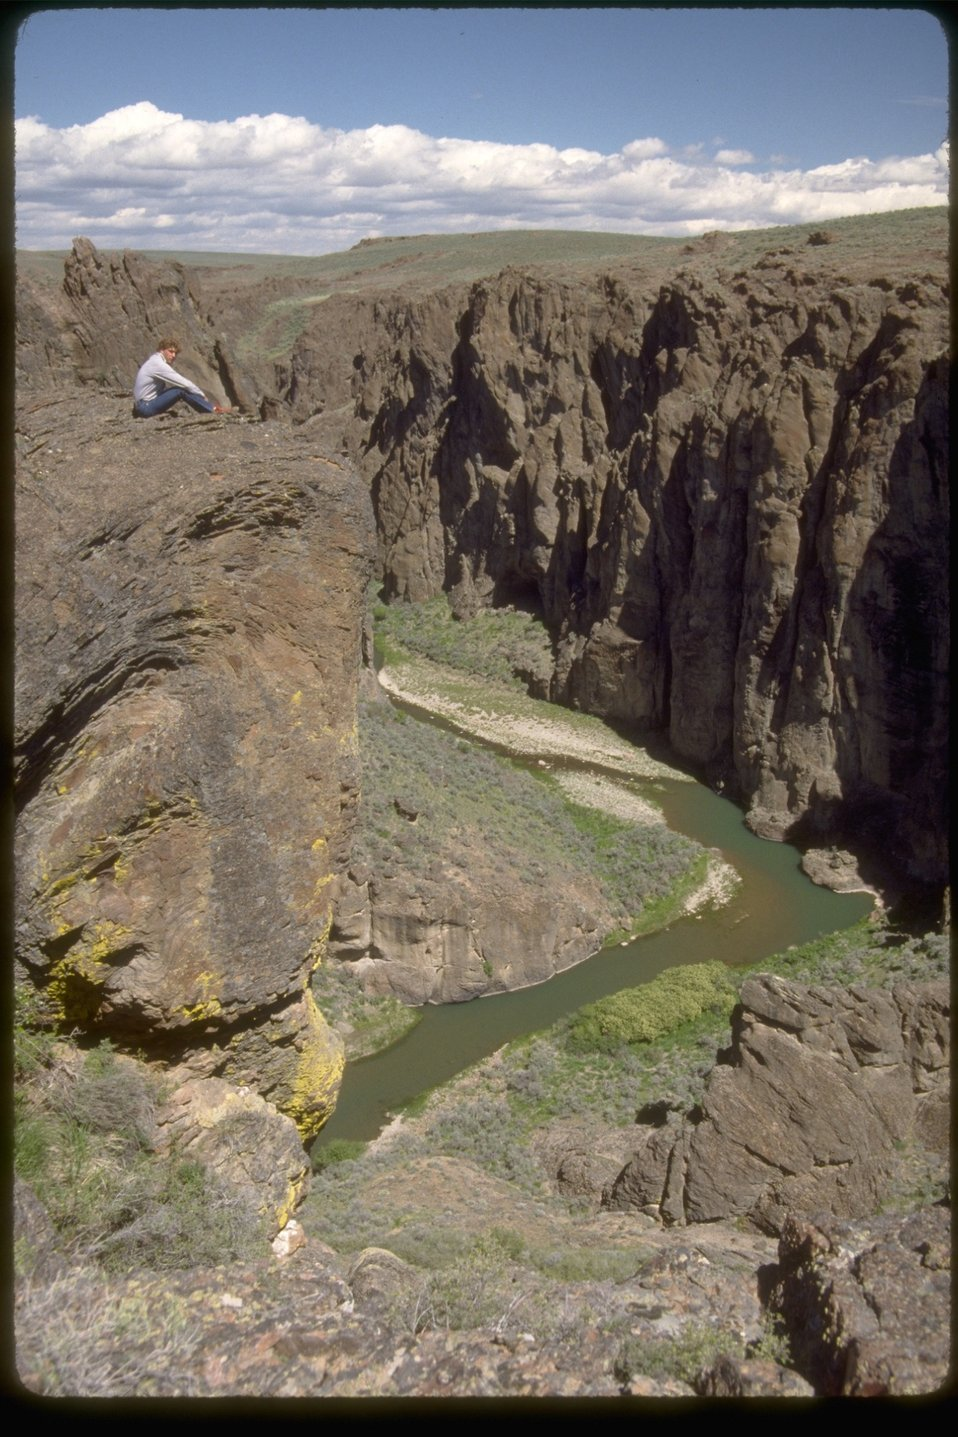 Upper West Little Owyhee from rim with a person sight seeing from the rim.  OR 3-173